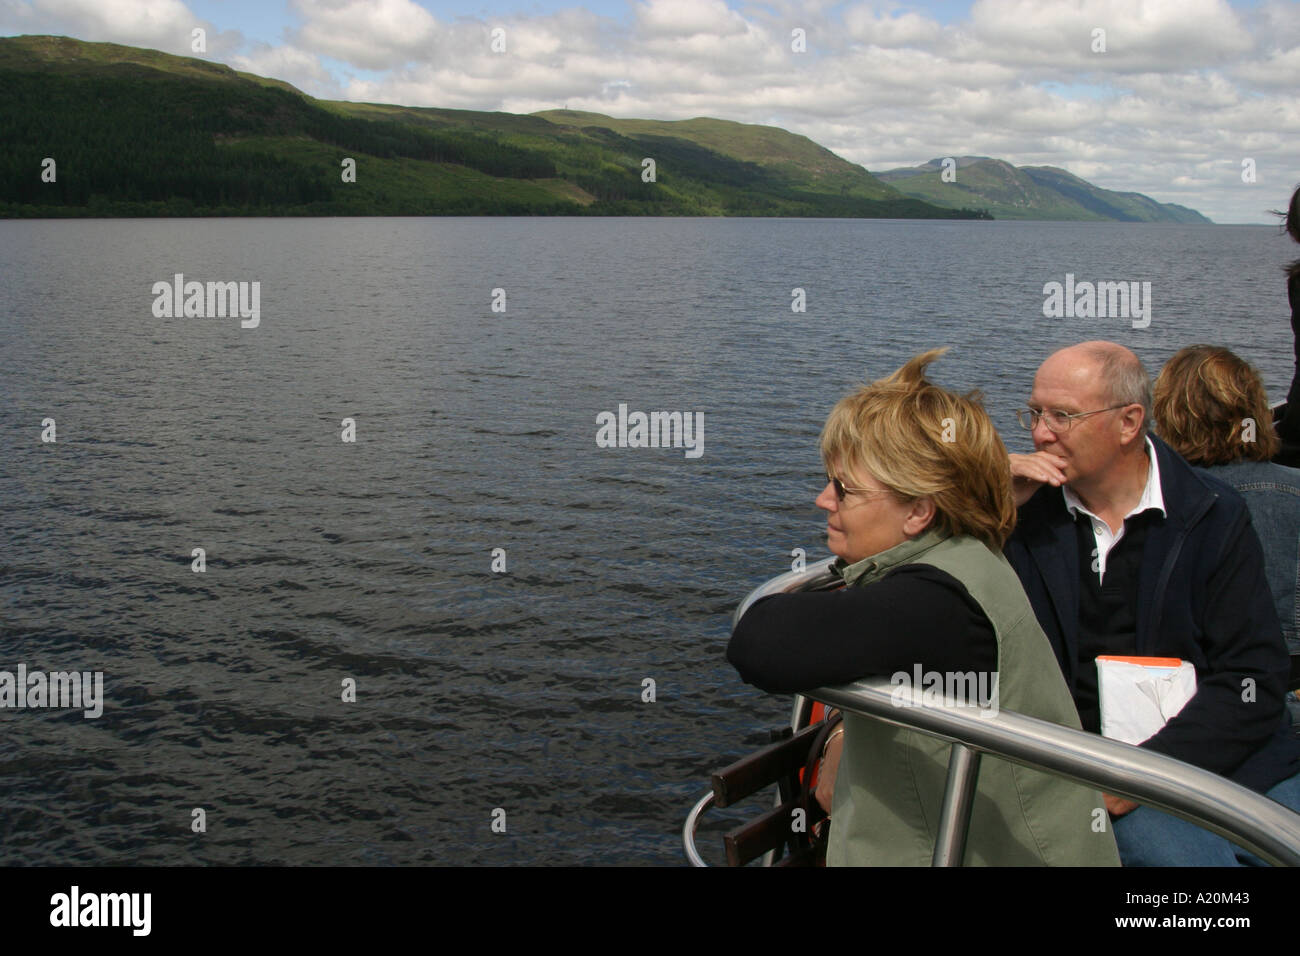 Tourists on a pleasure cruiser boat tour of Loch Ness keep an eye open for the Nessie the Loch Ness Monster, Scotland - Stock Image